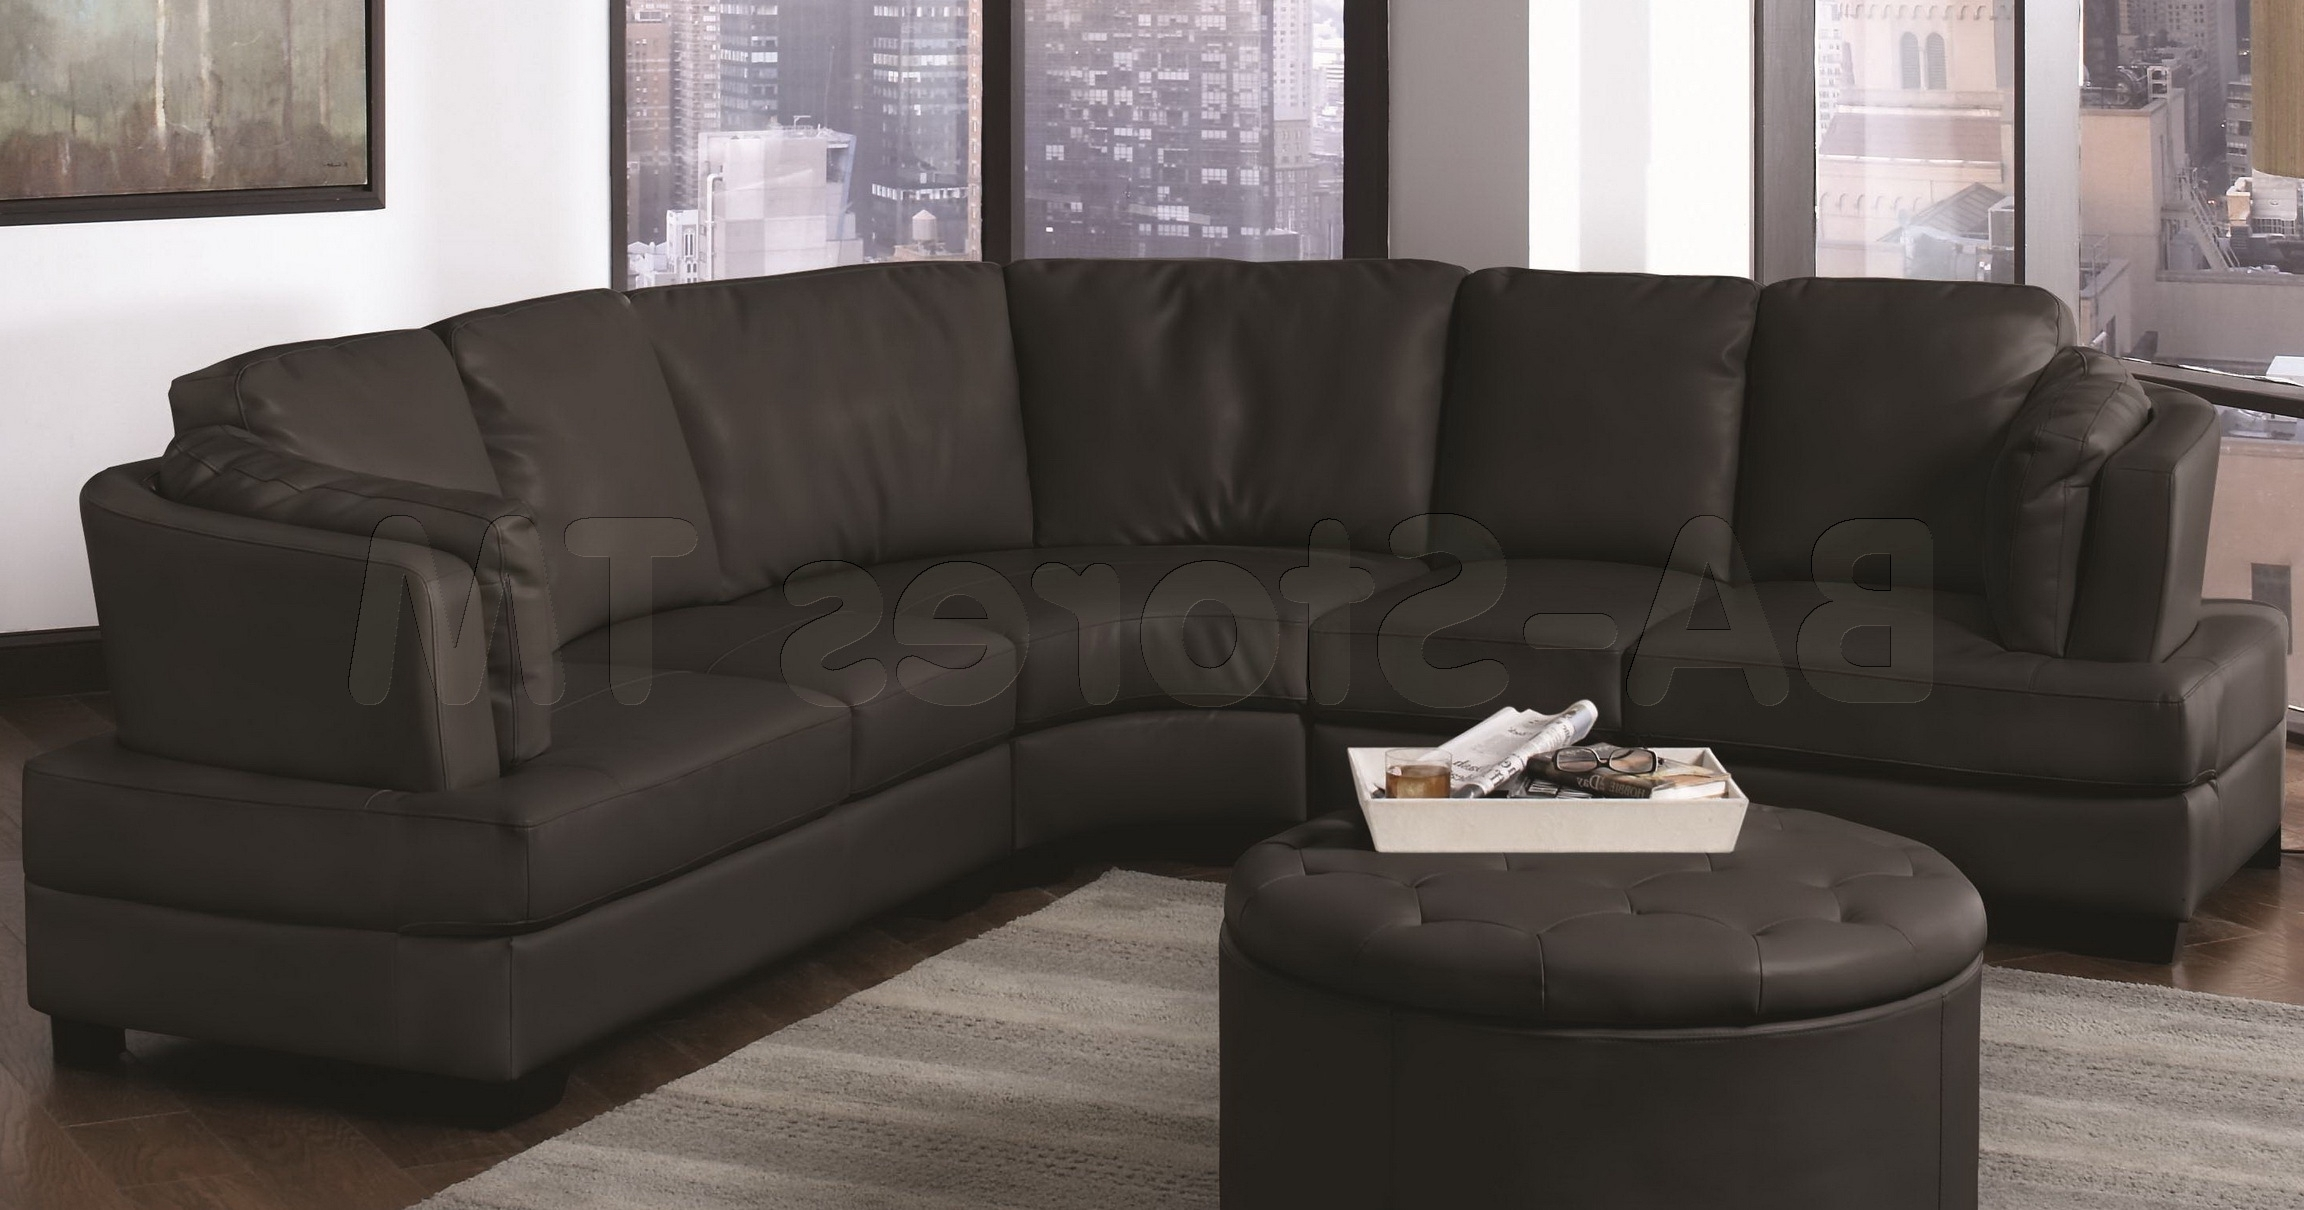 Sectional Sofa : Round Couch Curved Two Seater Sofa Reclining With Regard To Most Recent Rounded Corner Sectional Sofas (View 6 of 15)